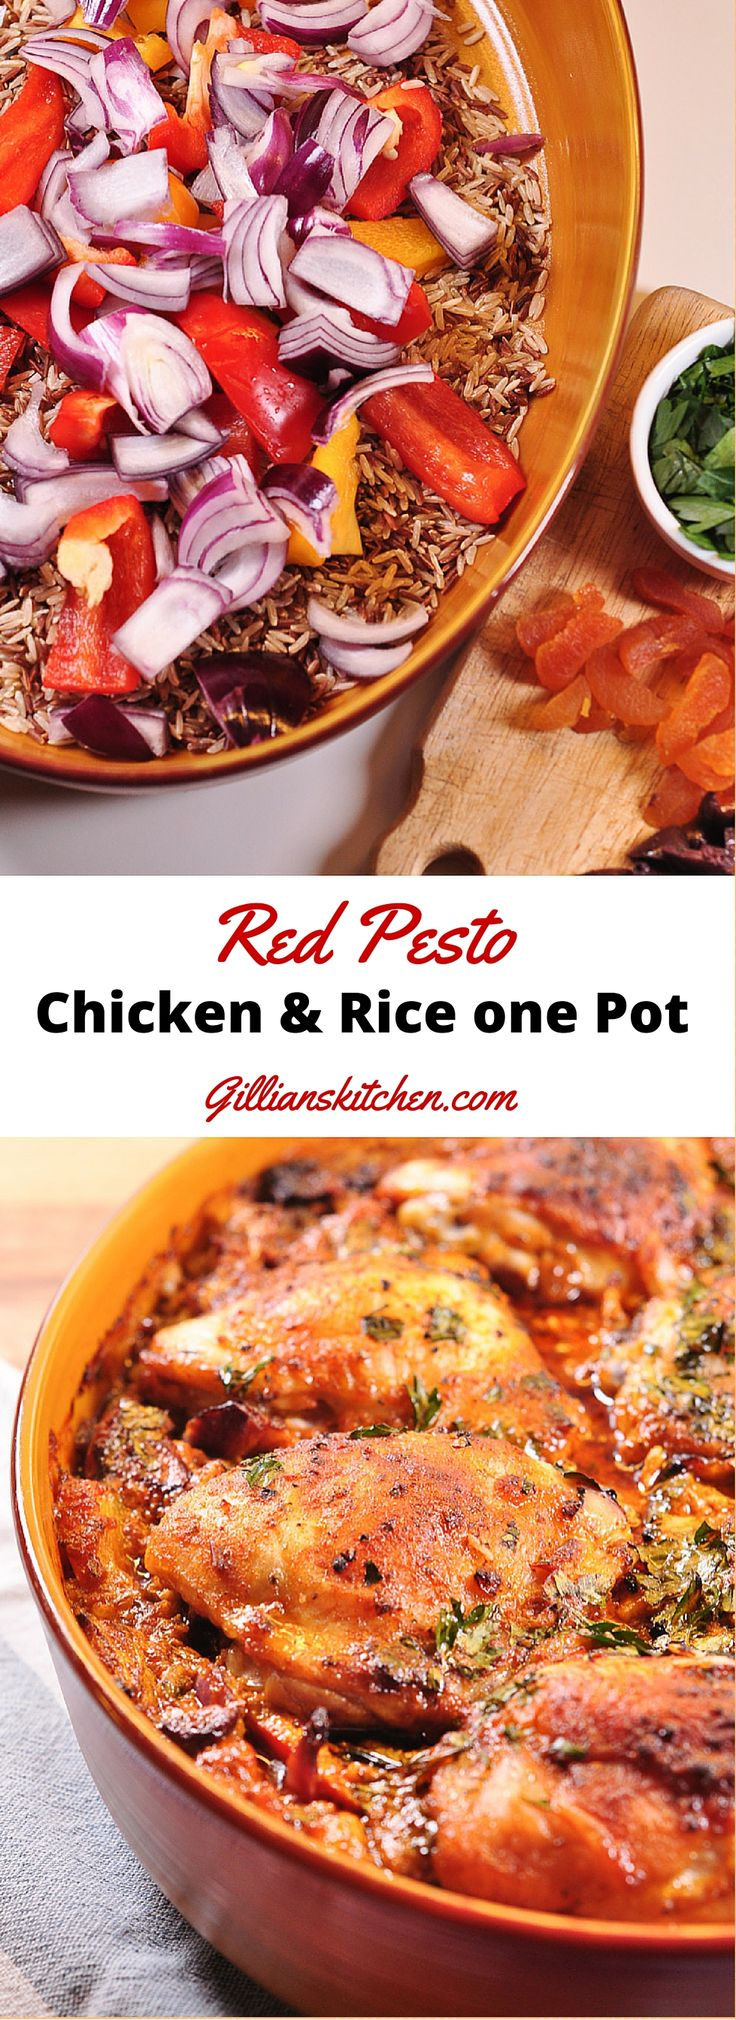 Recipes using red pesto and chicken